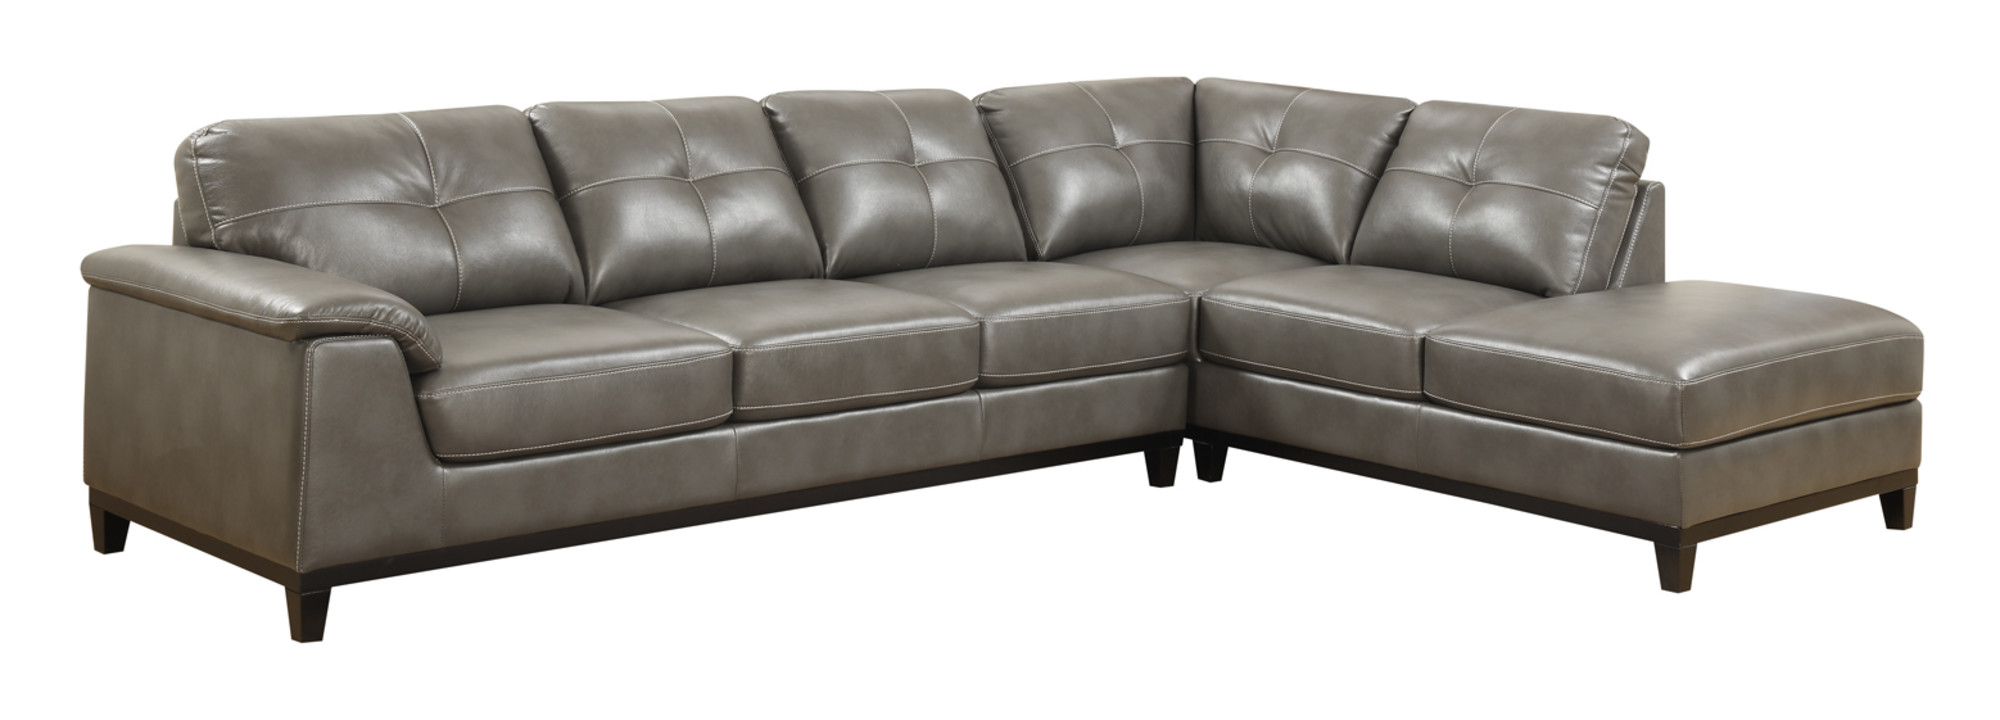 justin ii fabric reclining sectional sofa sofas usados baratos olx emerald home marquis gray with faux leather upholstery padded arms and contrast stitching walmart com